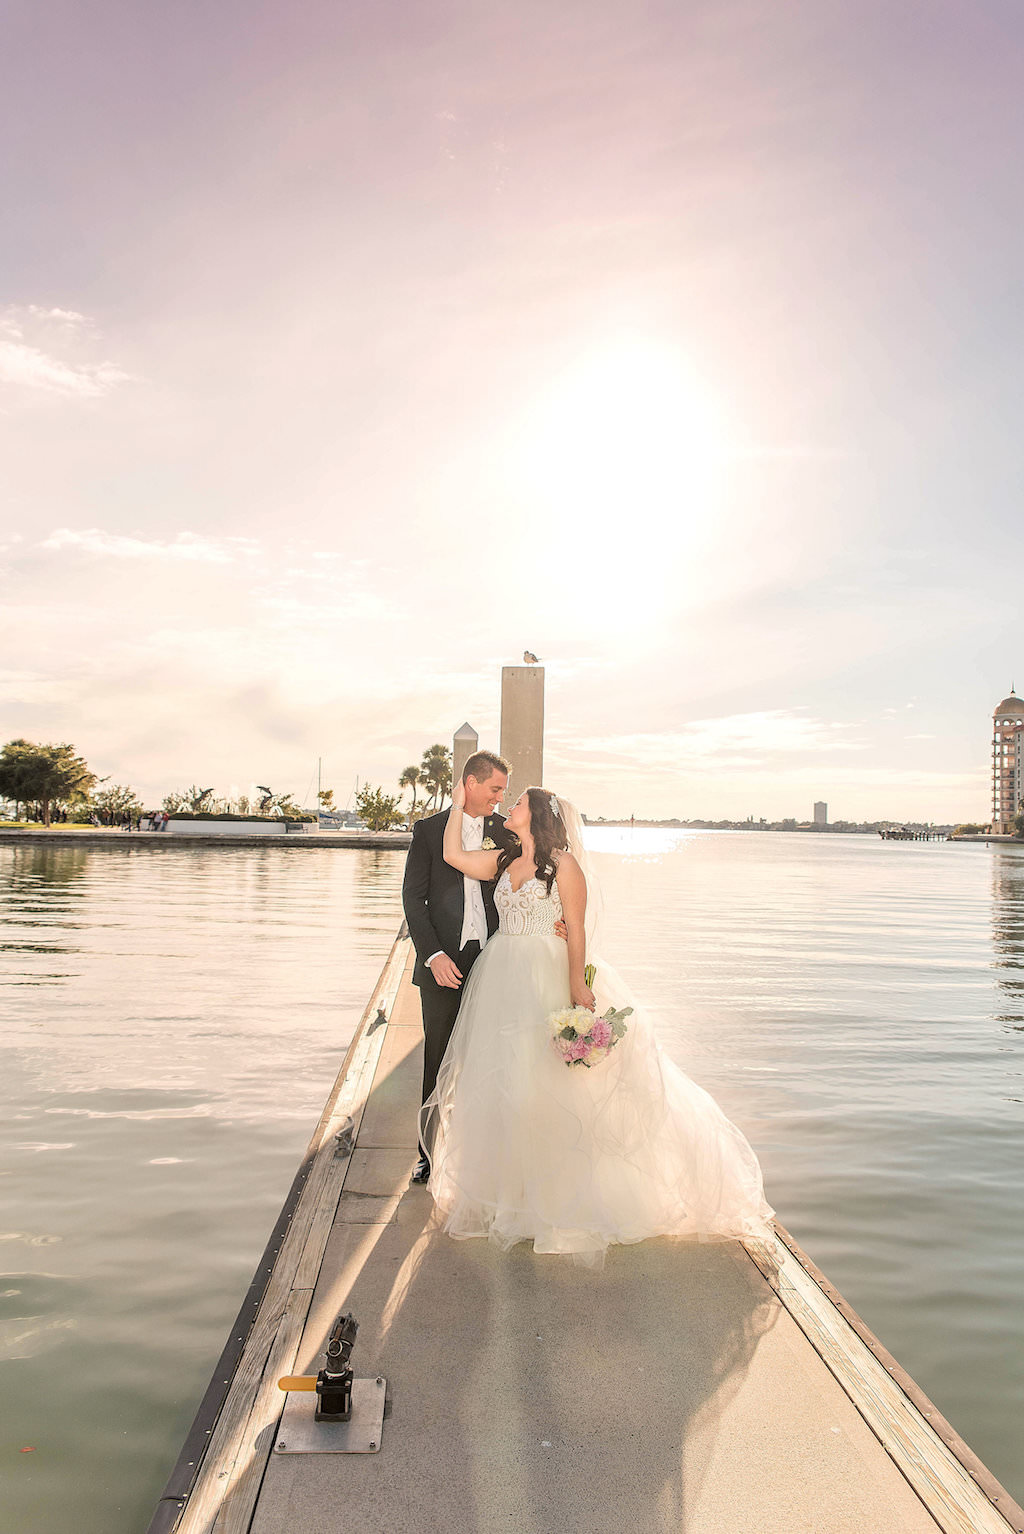 Outdoor Waterfront Marina Sunset Wedding Portrait, Bride in Layered Ballgown Hayley Paige Dress with Veil with PInk and White Peony Bouquet | Sarasota Wedding Photographer Kristen Marie Photography